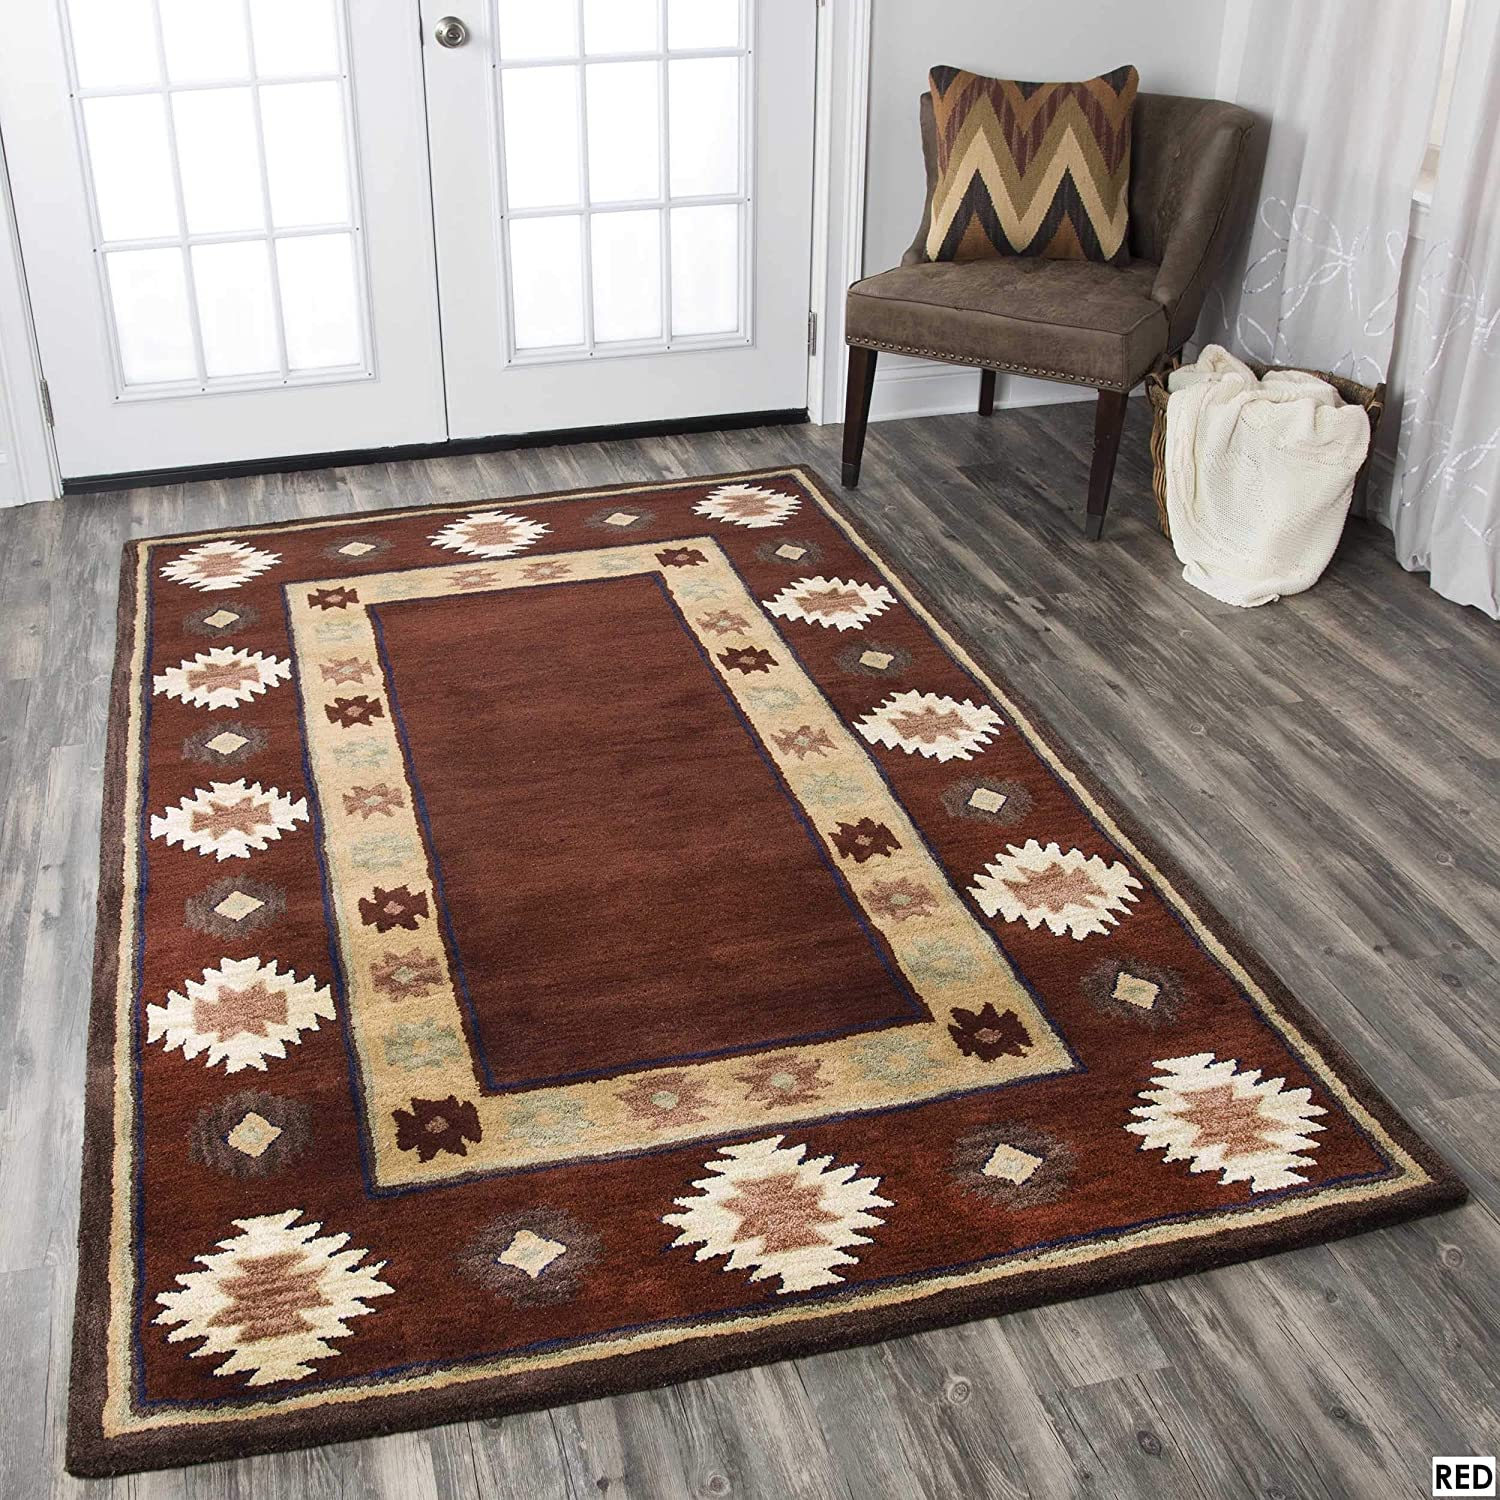 Rizzy Home Ryder Collection Southwest Bordered Rug Burgundy 8' x 10' Contains Latex Geometric 0.25-0.5 inch Stain Resistant, Handmade 8' x 10'